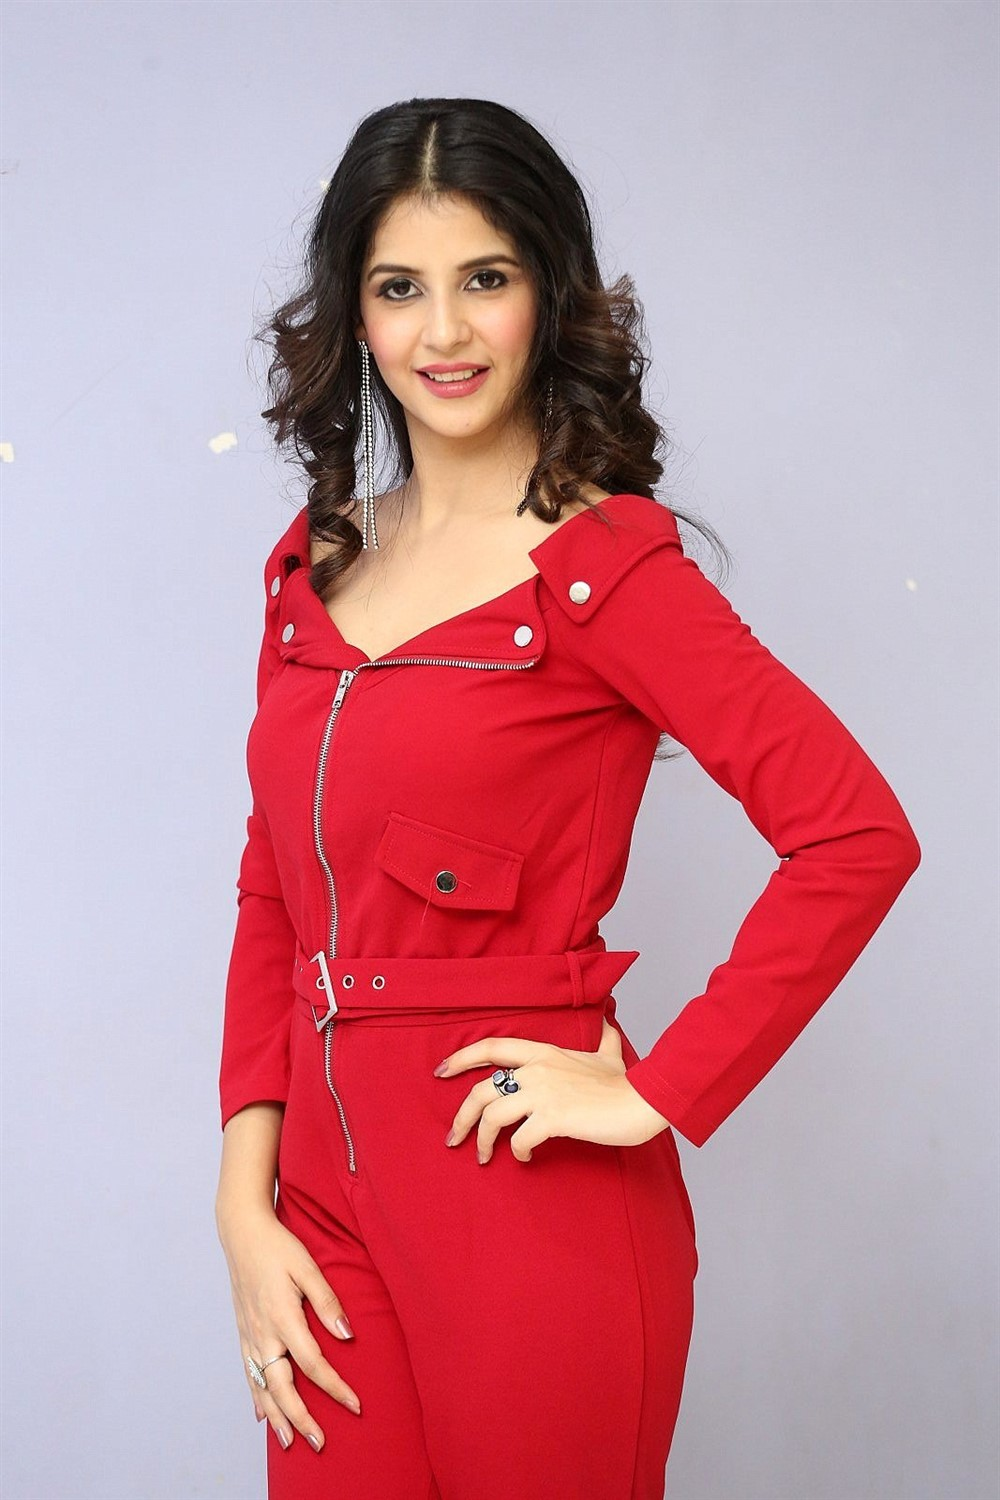 1st Rank Raju Actress Kashish Vohra Red Dress Images